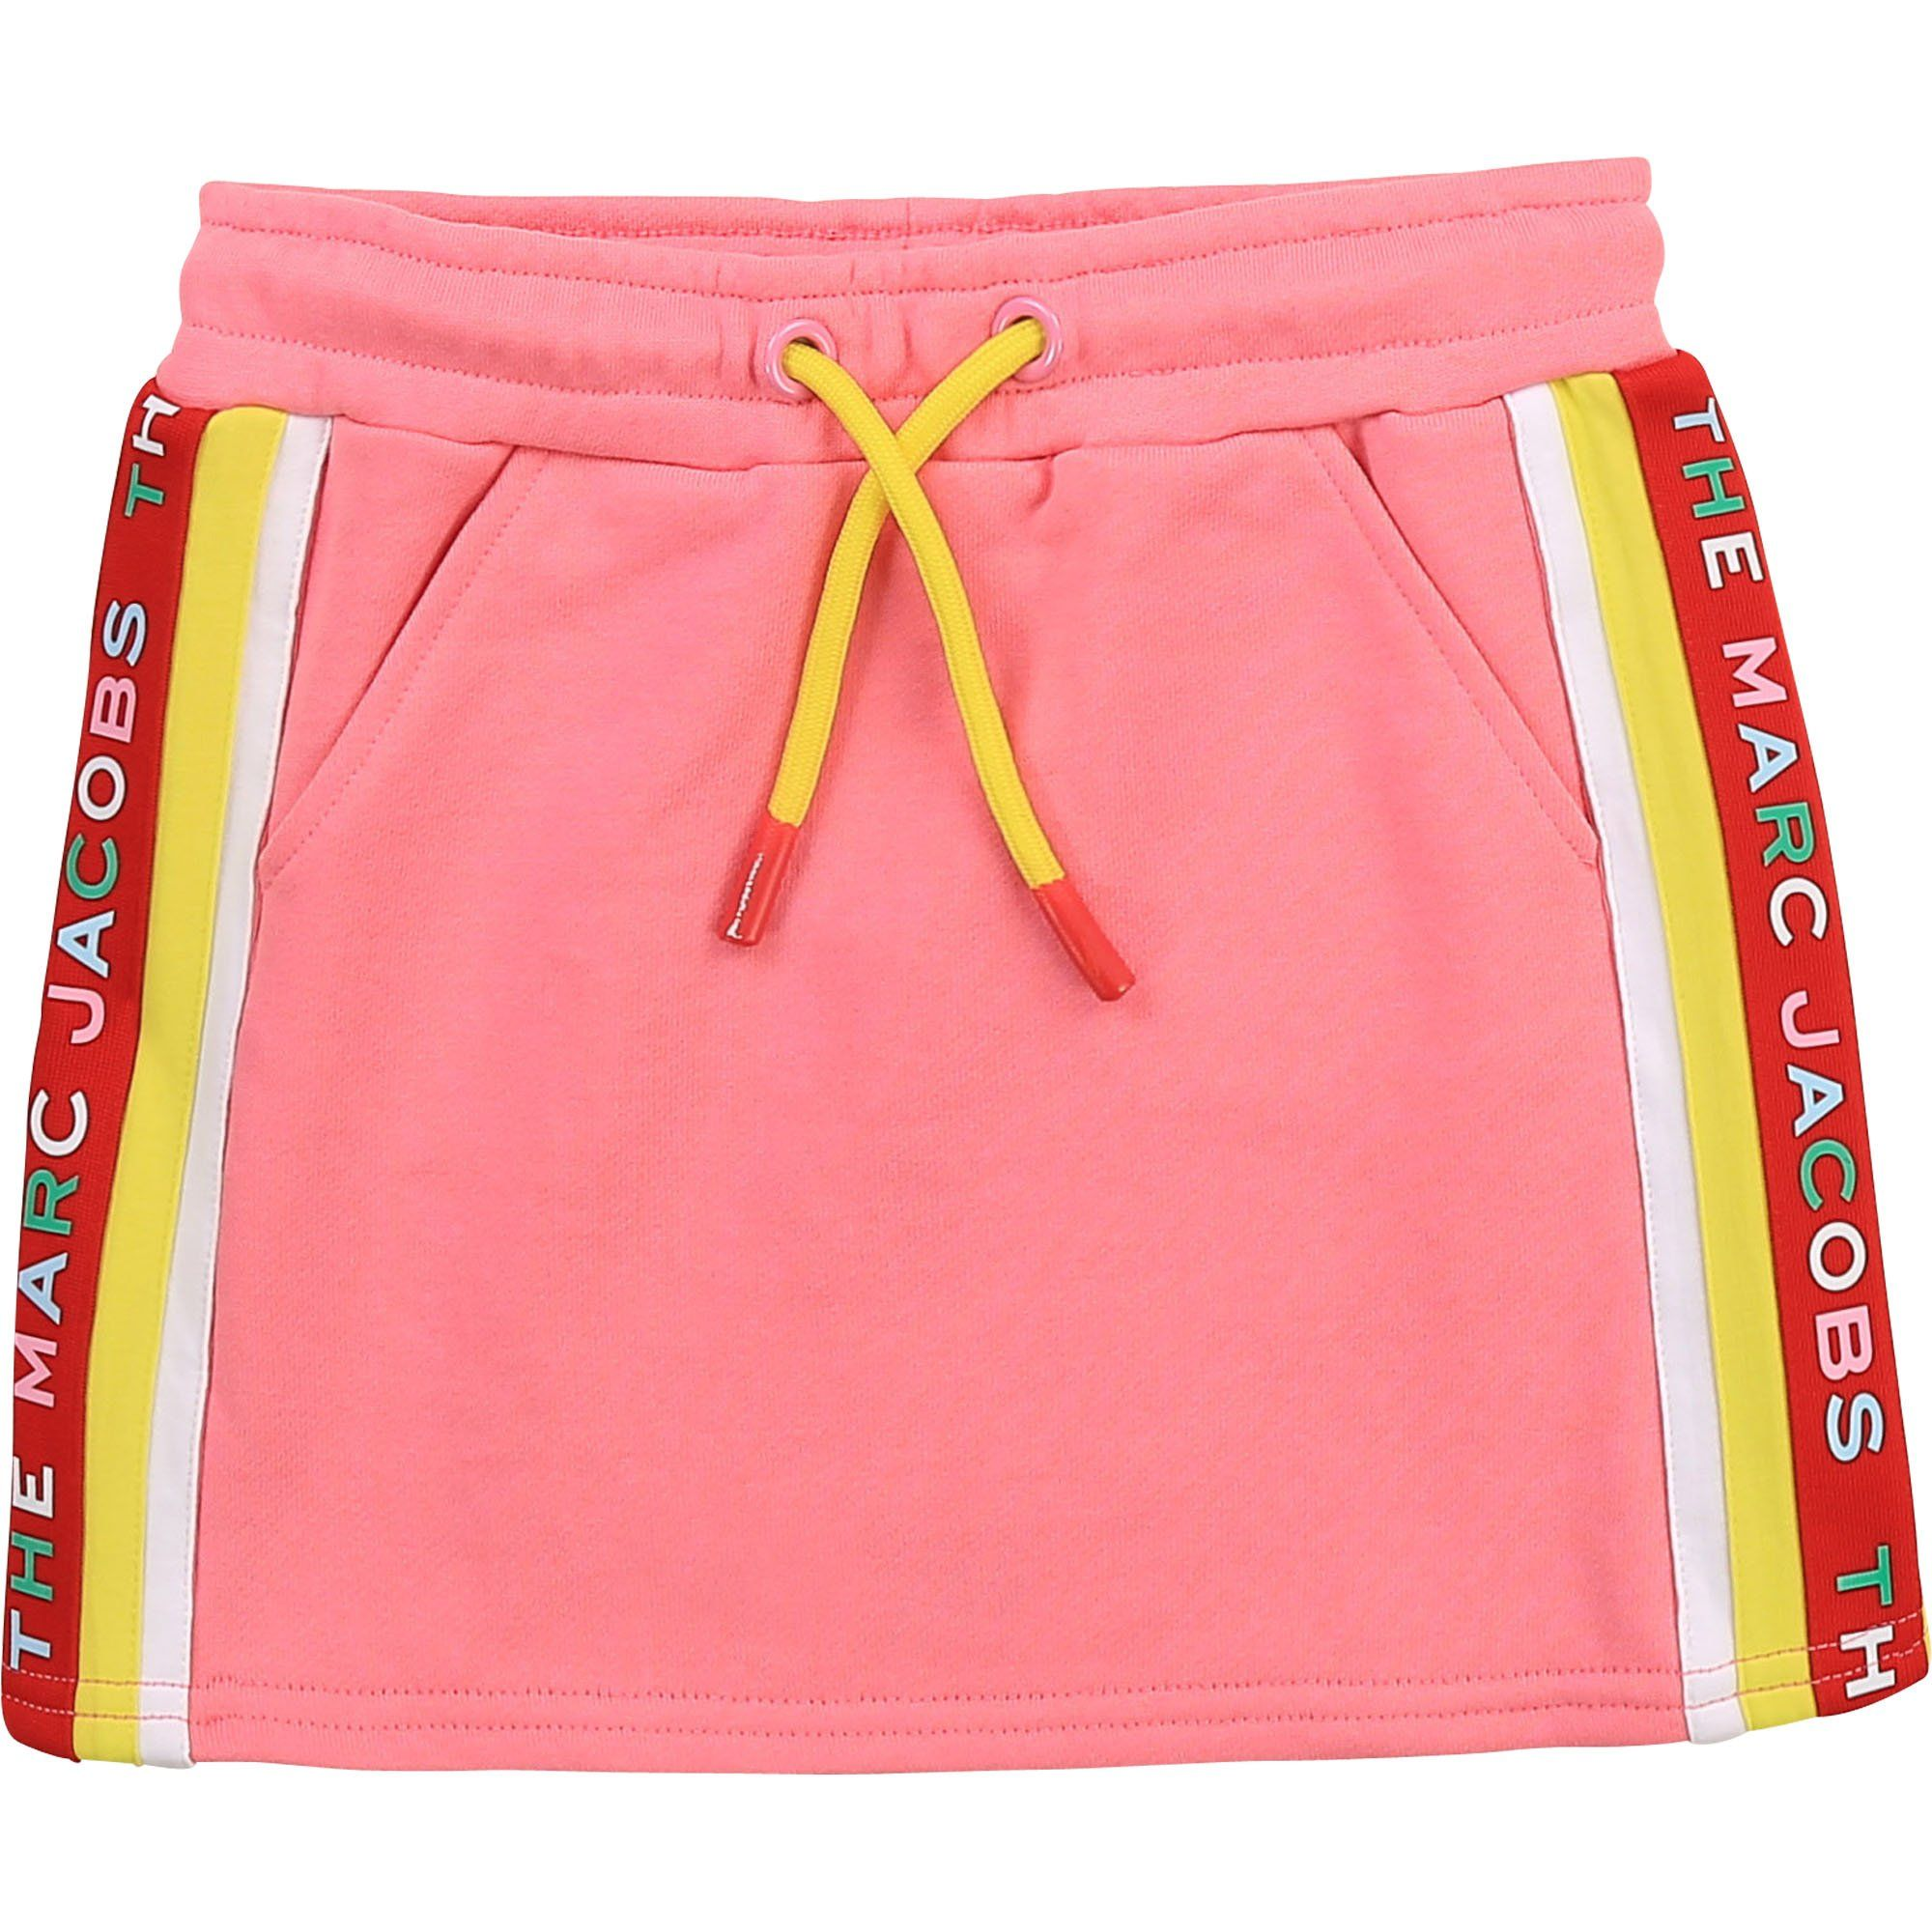 The Marc Jacobs Pink Skirt 3-5 yrs